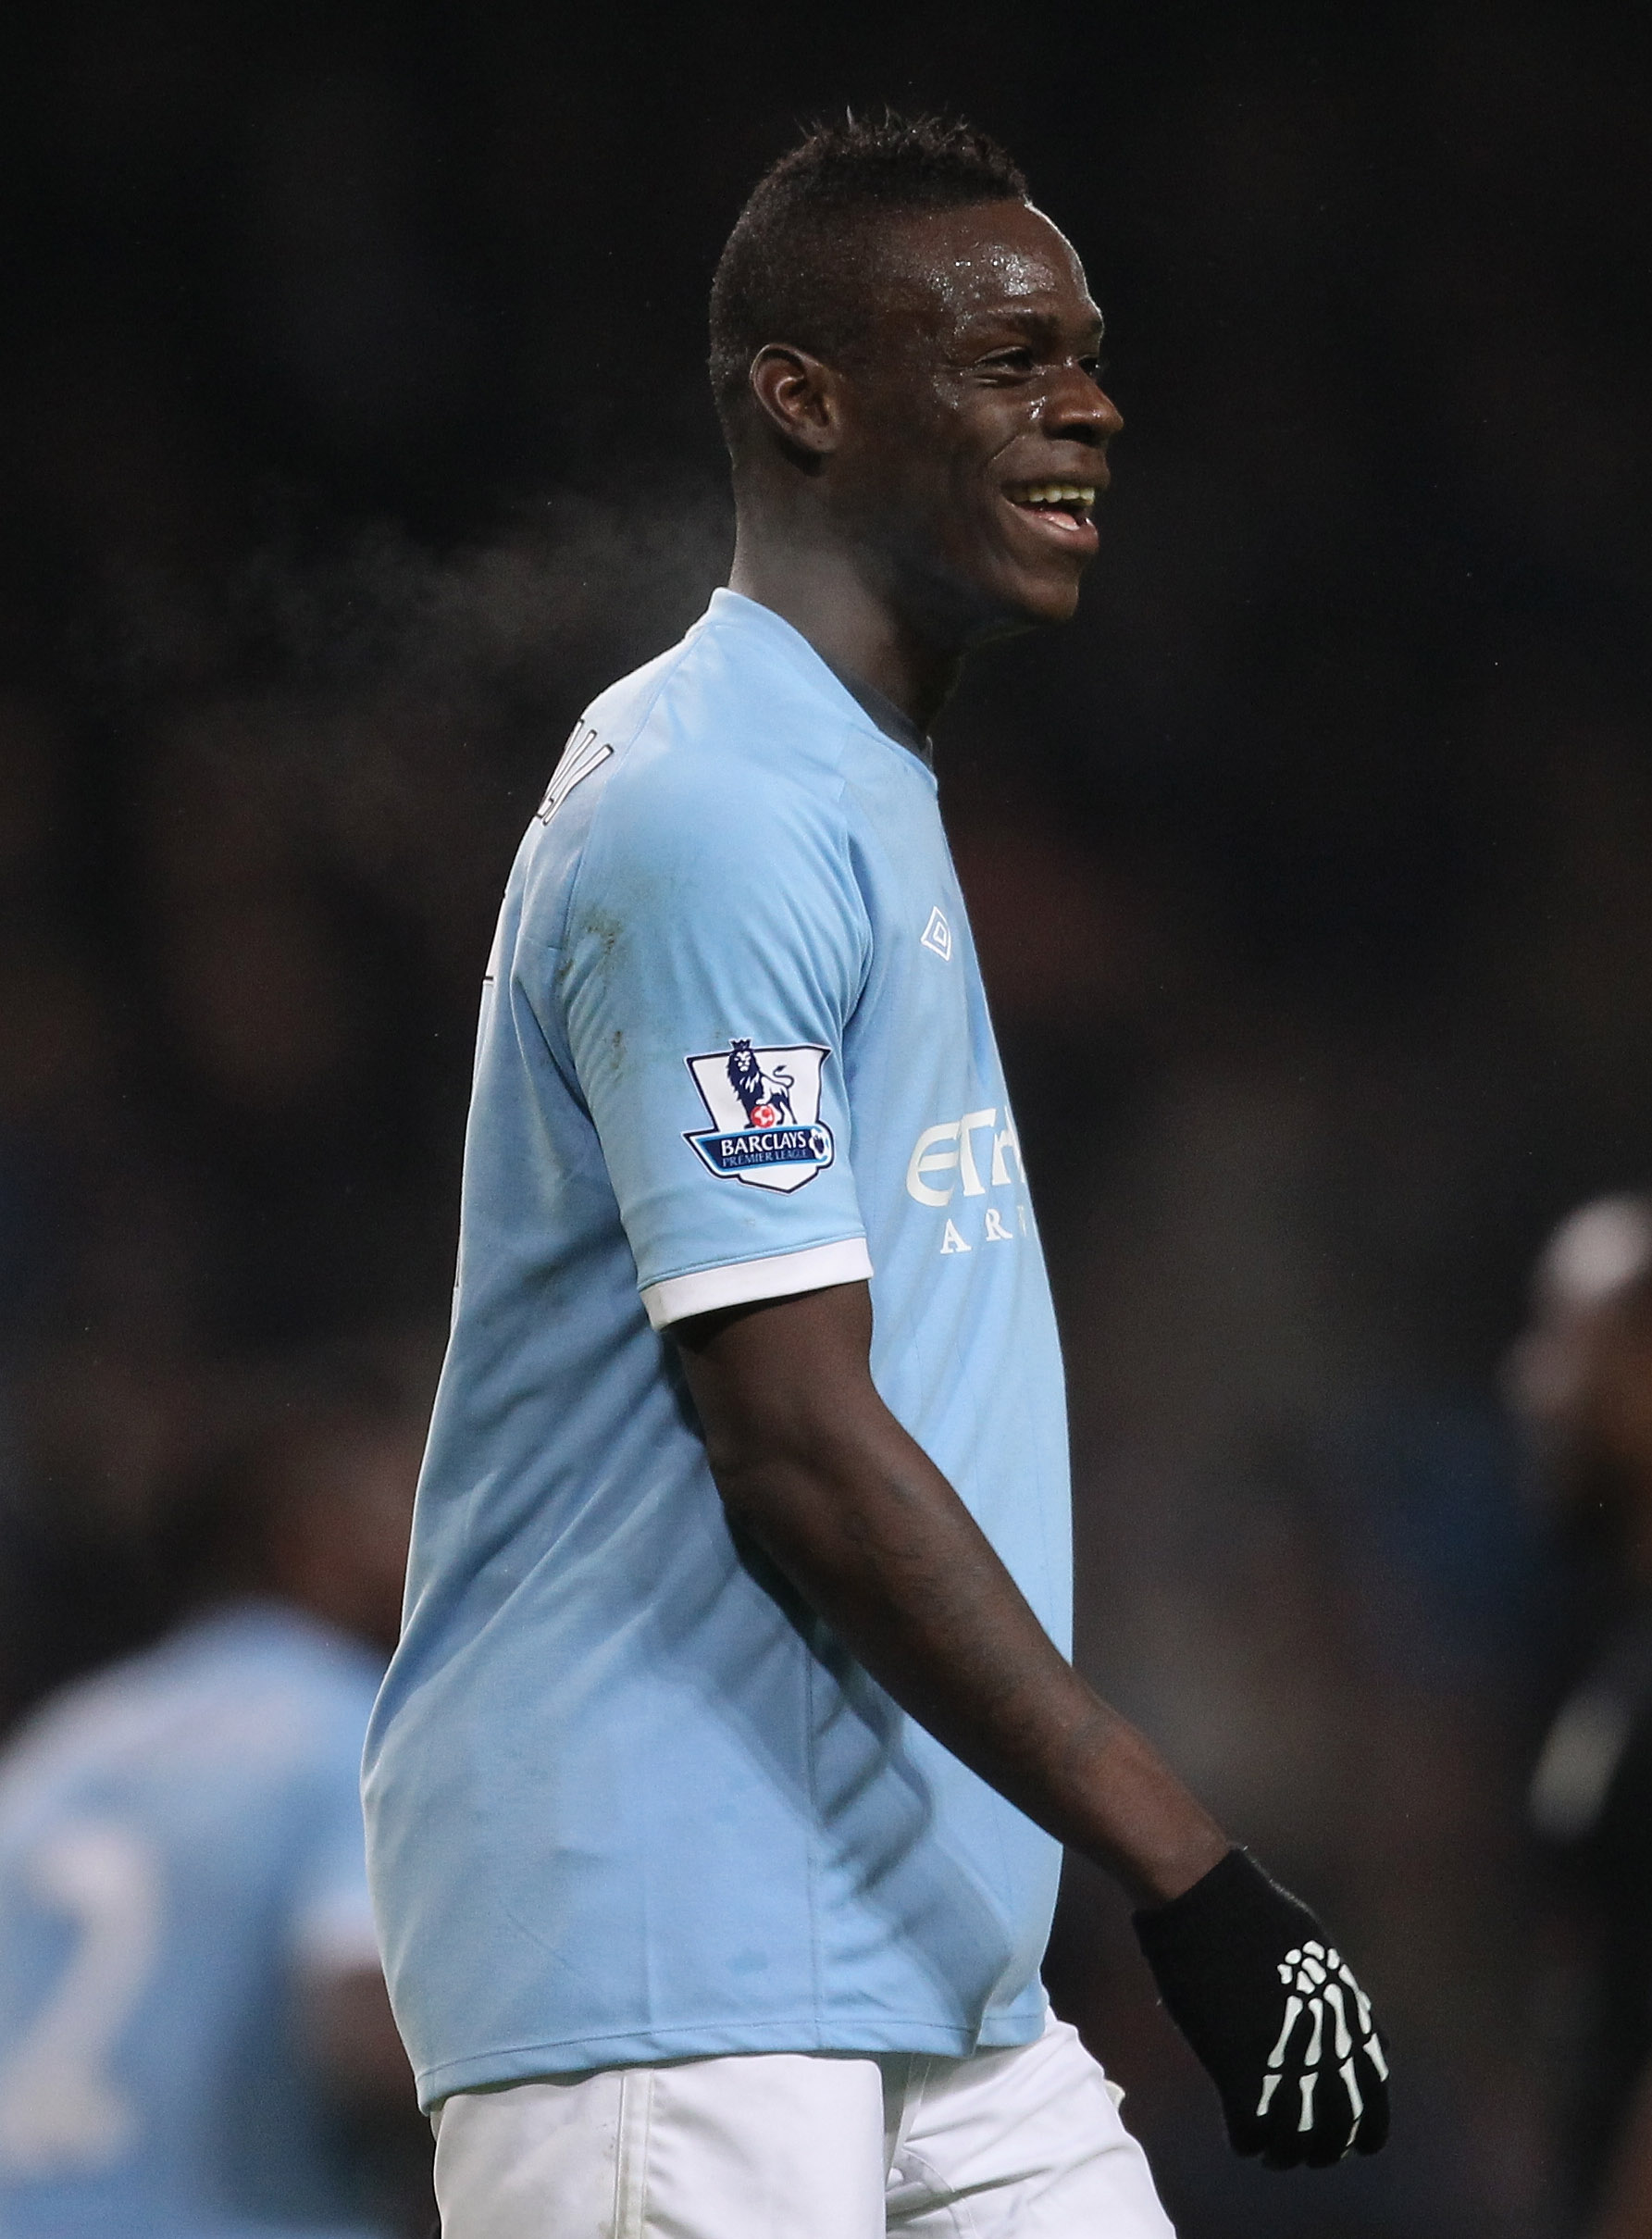 MANCHESTER, ENGLAND - DECEMBER 28:  Mario Balotelli of Manchester City smiles after scoring his third goal during the Barclays Premier League match between Manchester City and Aston Villa at the City of Manchester Stadium on December 28, 2010 in Mancheste